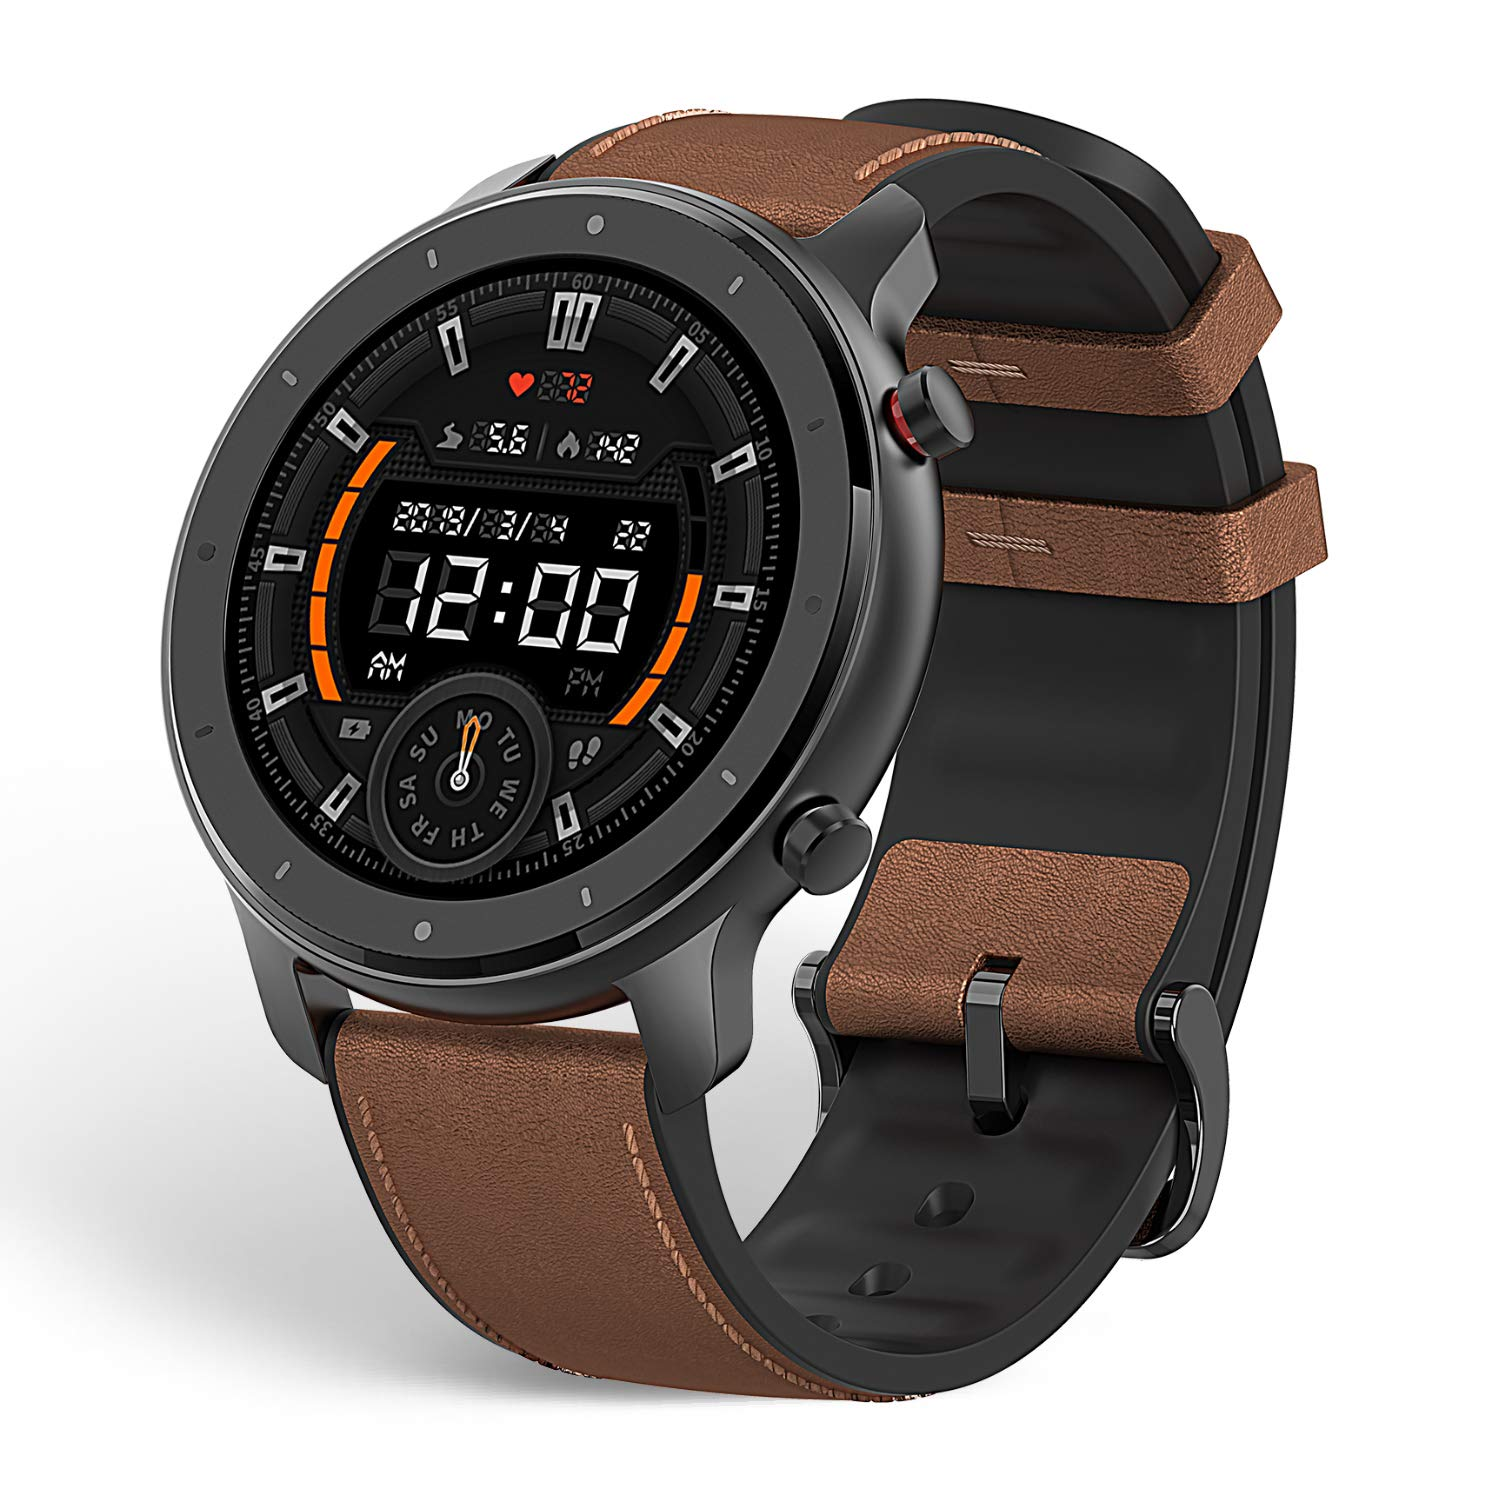 Amazfit GTR Aluminium Alloy Smartwatch All-Day Heart Rate Monitor Daily Activity Tracker Rate and Activity Tracking 24-Day Battery Life 12- Sport Modes 47mm (W1902US1N)